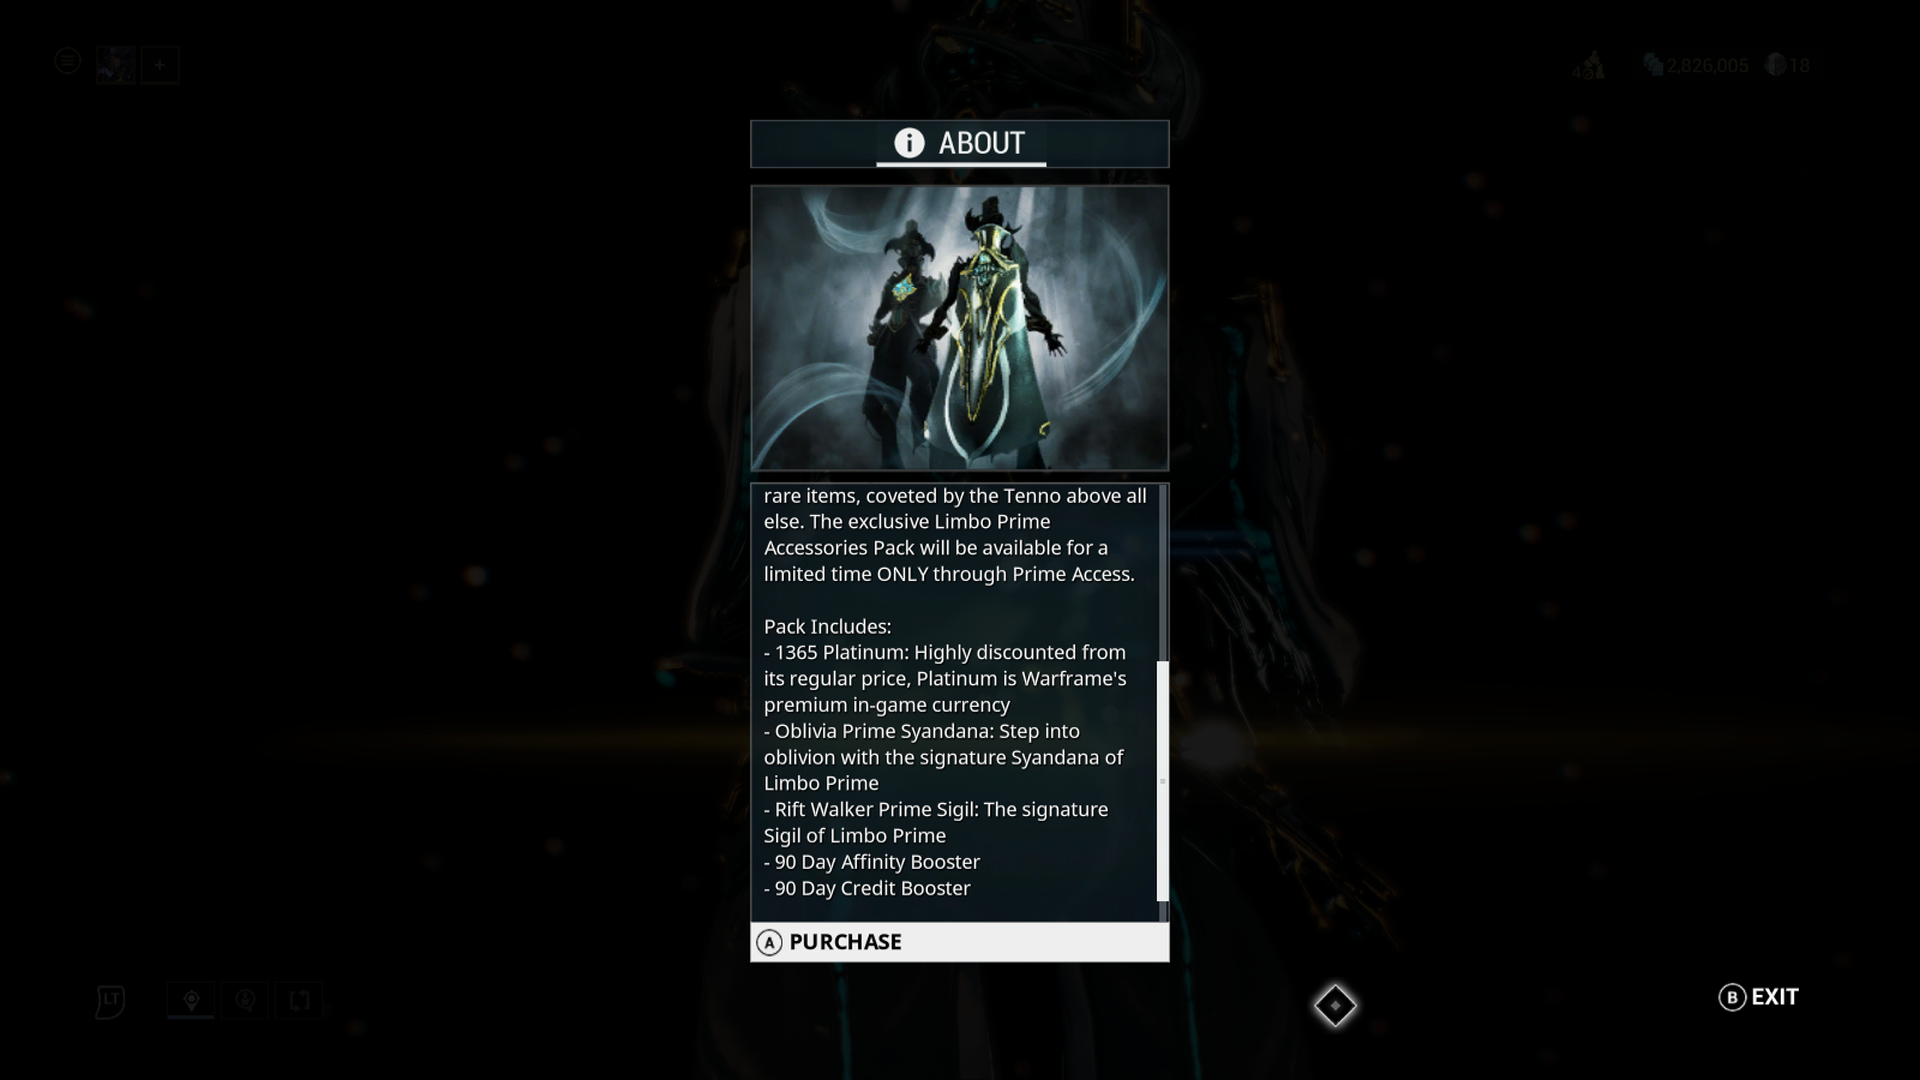 Warframe: Limbo Prime Access - Accessories Pack Screenshots